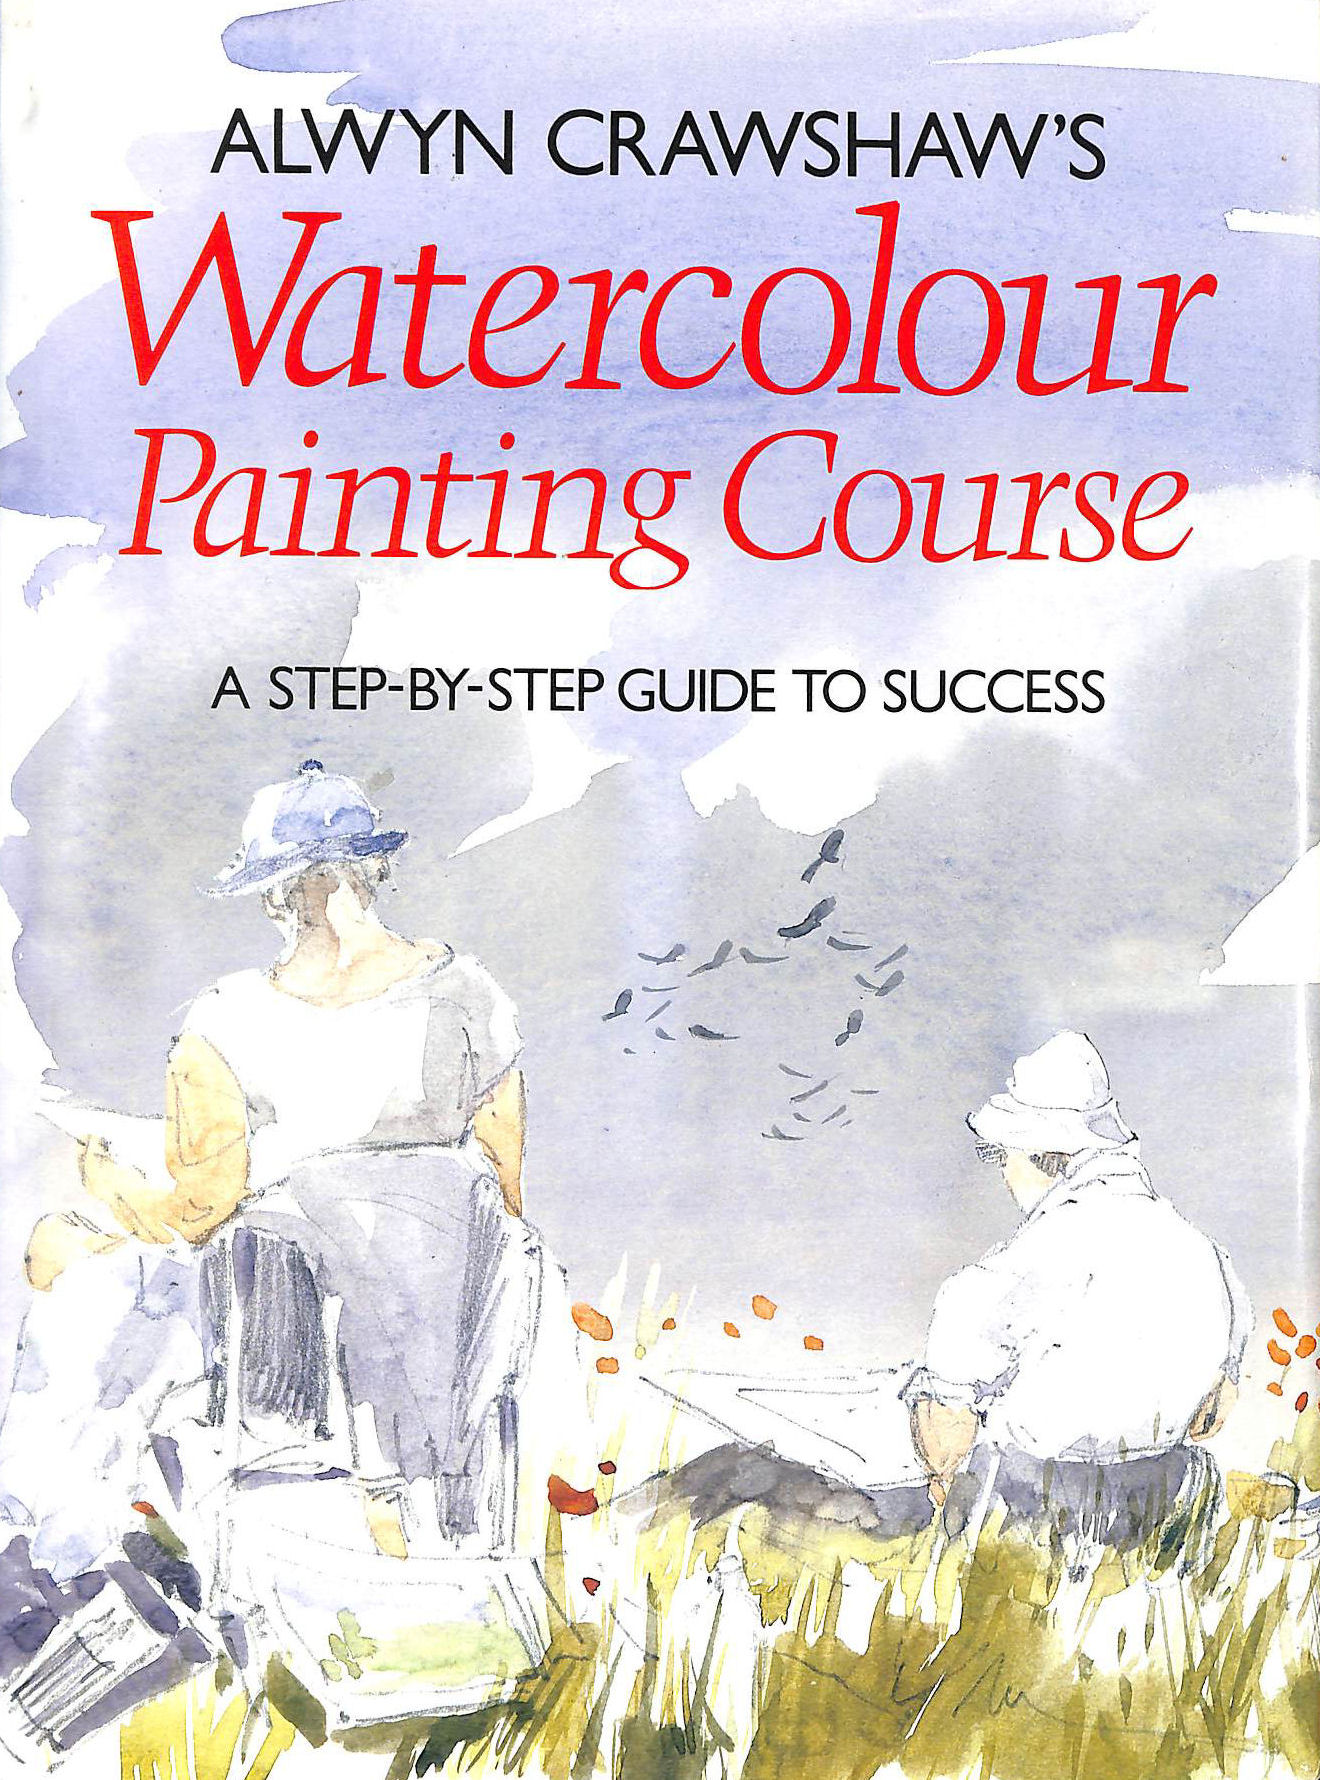 Image for Alwyn Crawshaw's Watercolour Painting Course: A Step-By-Step Guide To Success